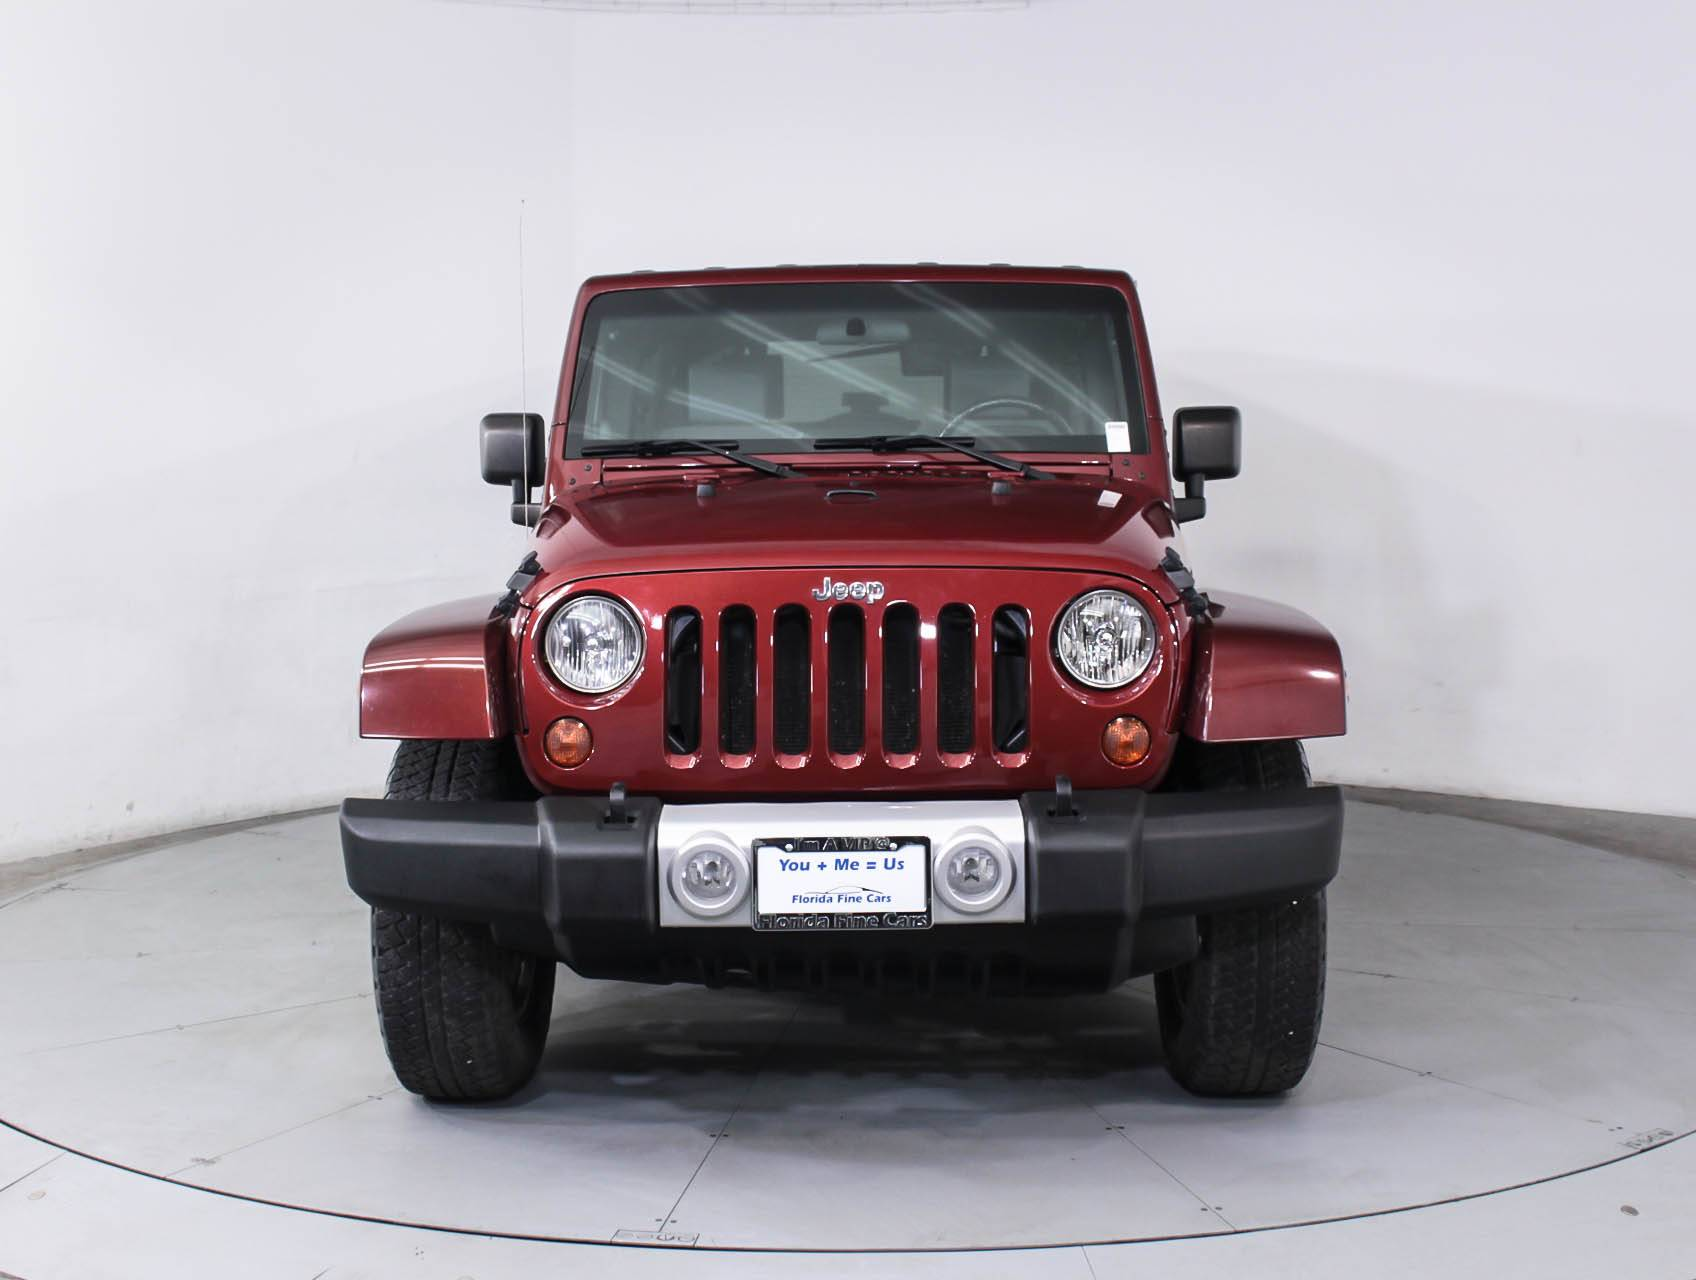 jeep link head with wrangler upgrade bluetooth radio control android wifi oem steering sd unlimited dvd mirror player gps unit stereo usb navi wheel video